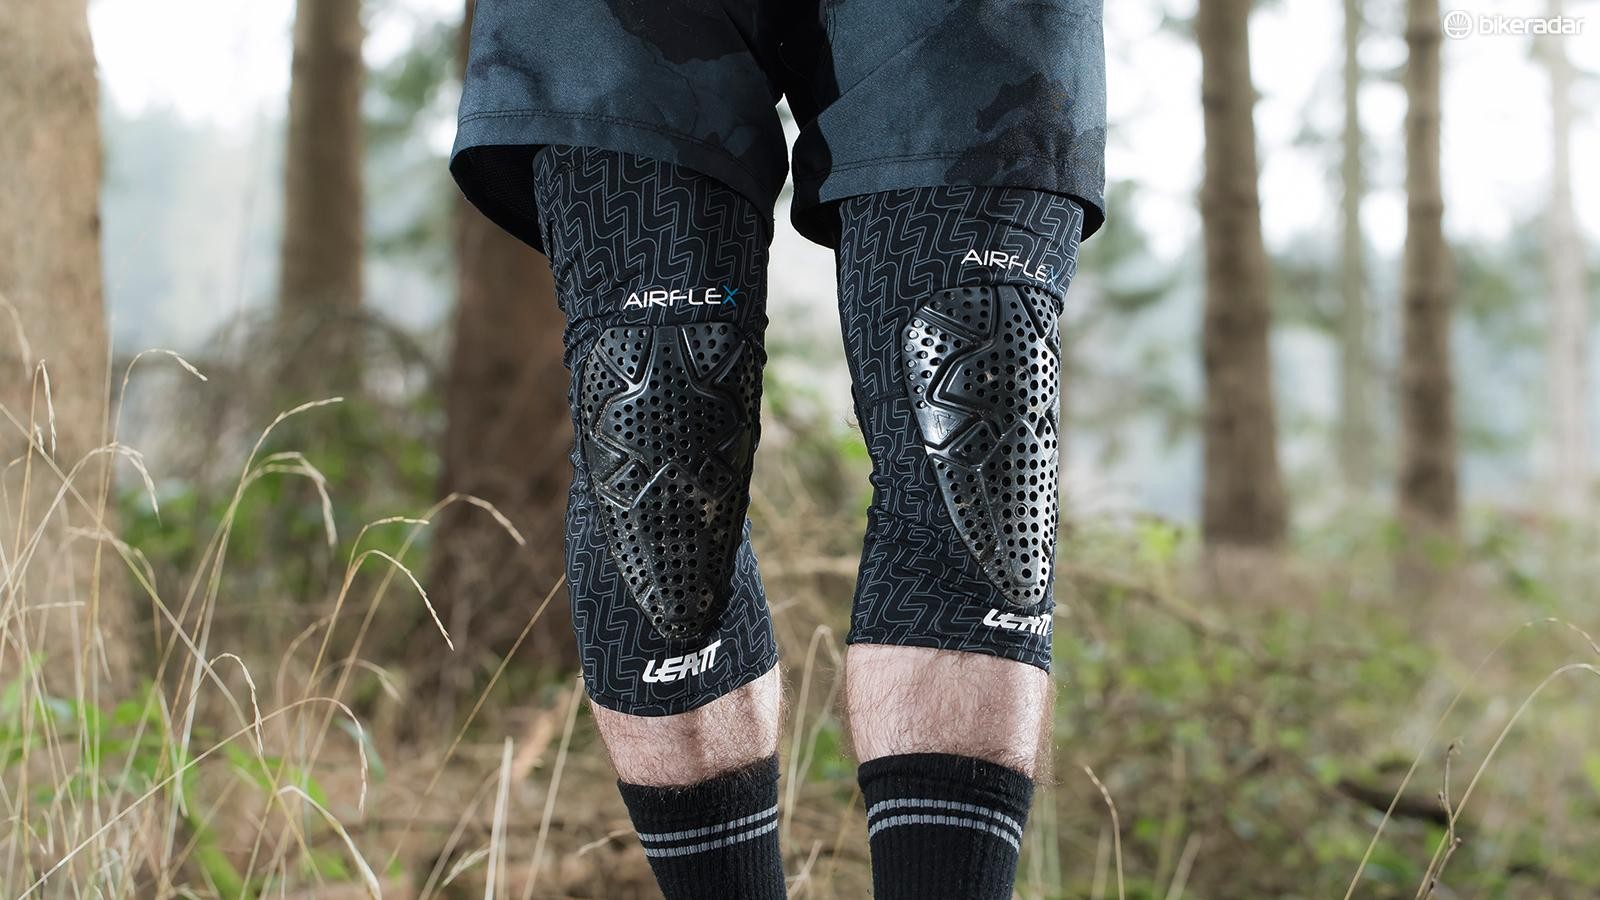 Leatt 3DF AirFlex knee pads